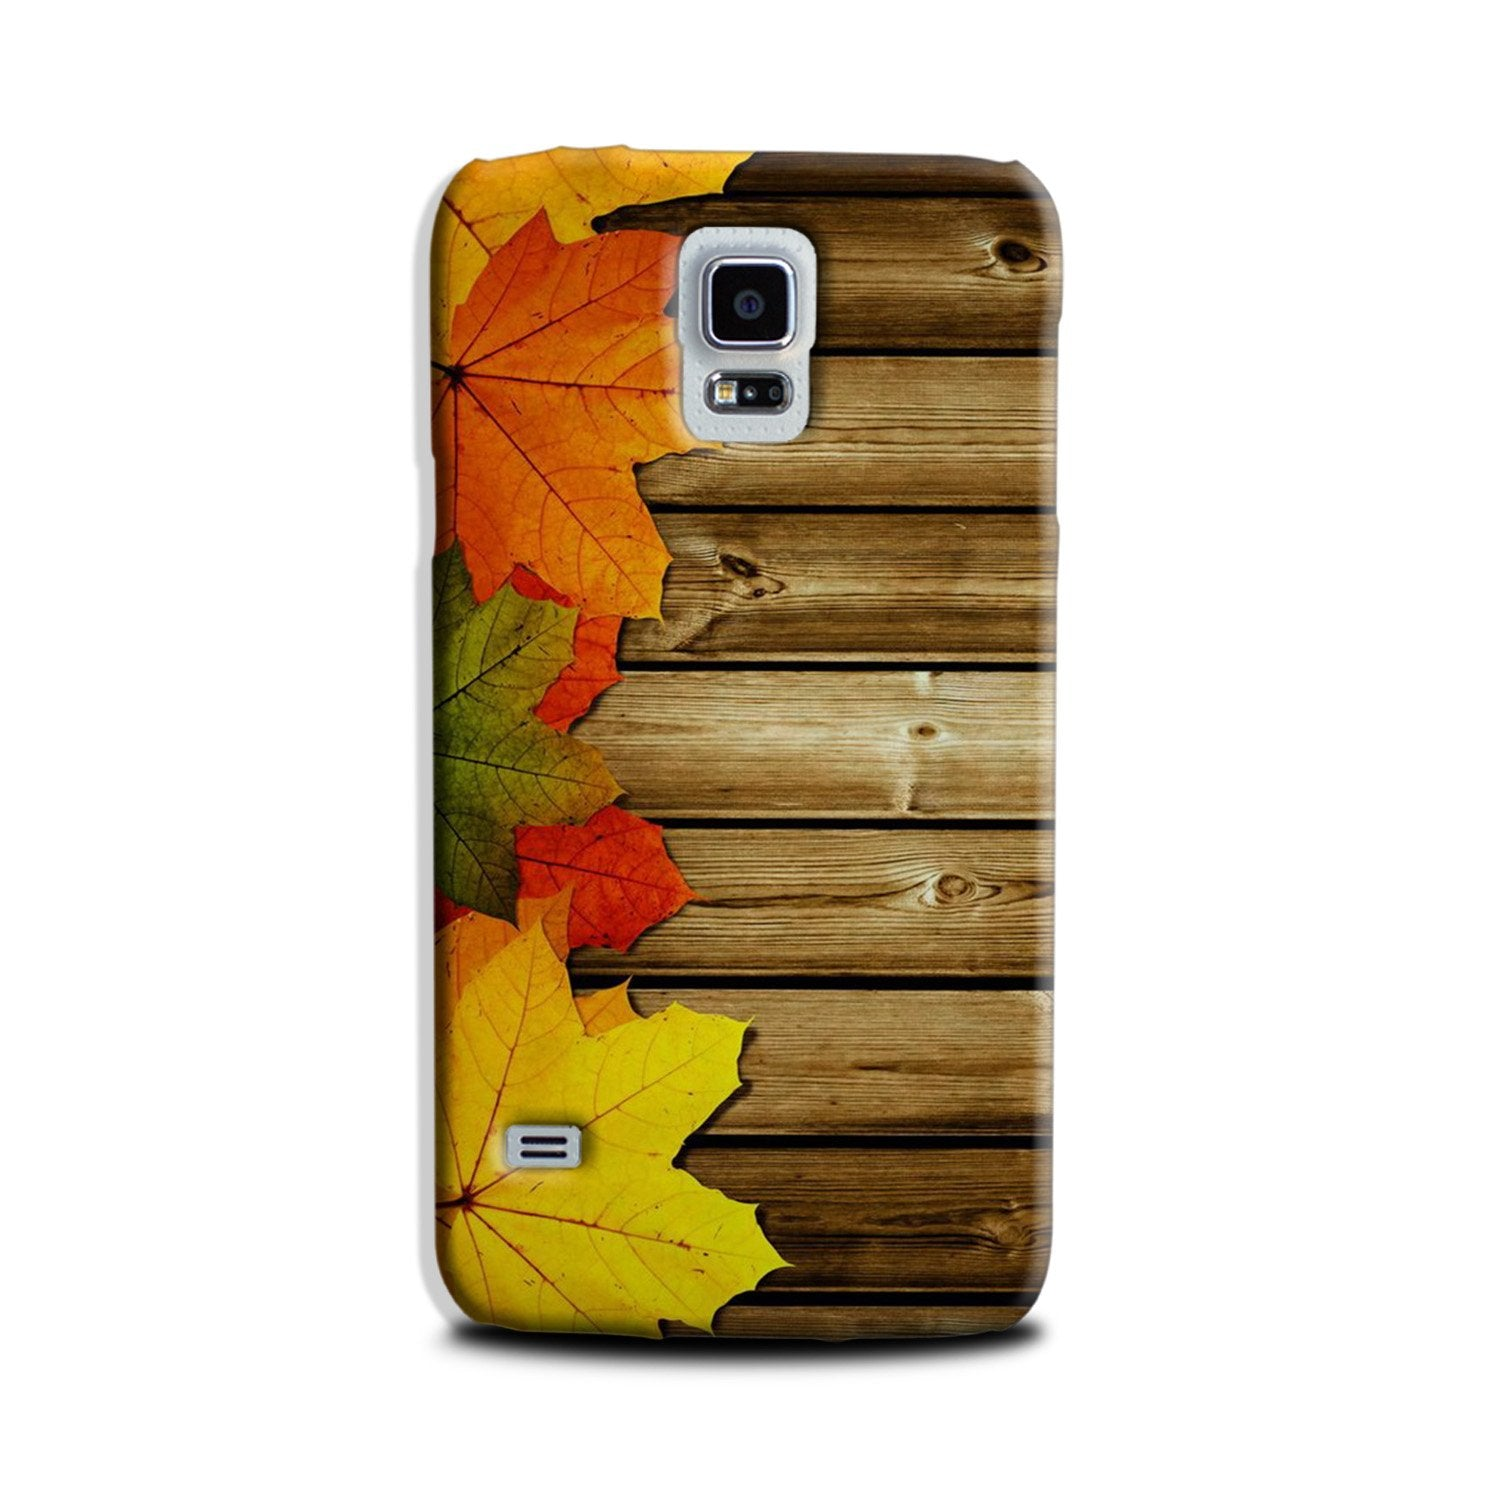 Wooden look3 Case for Galaxy S5